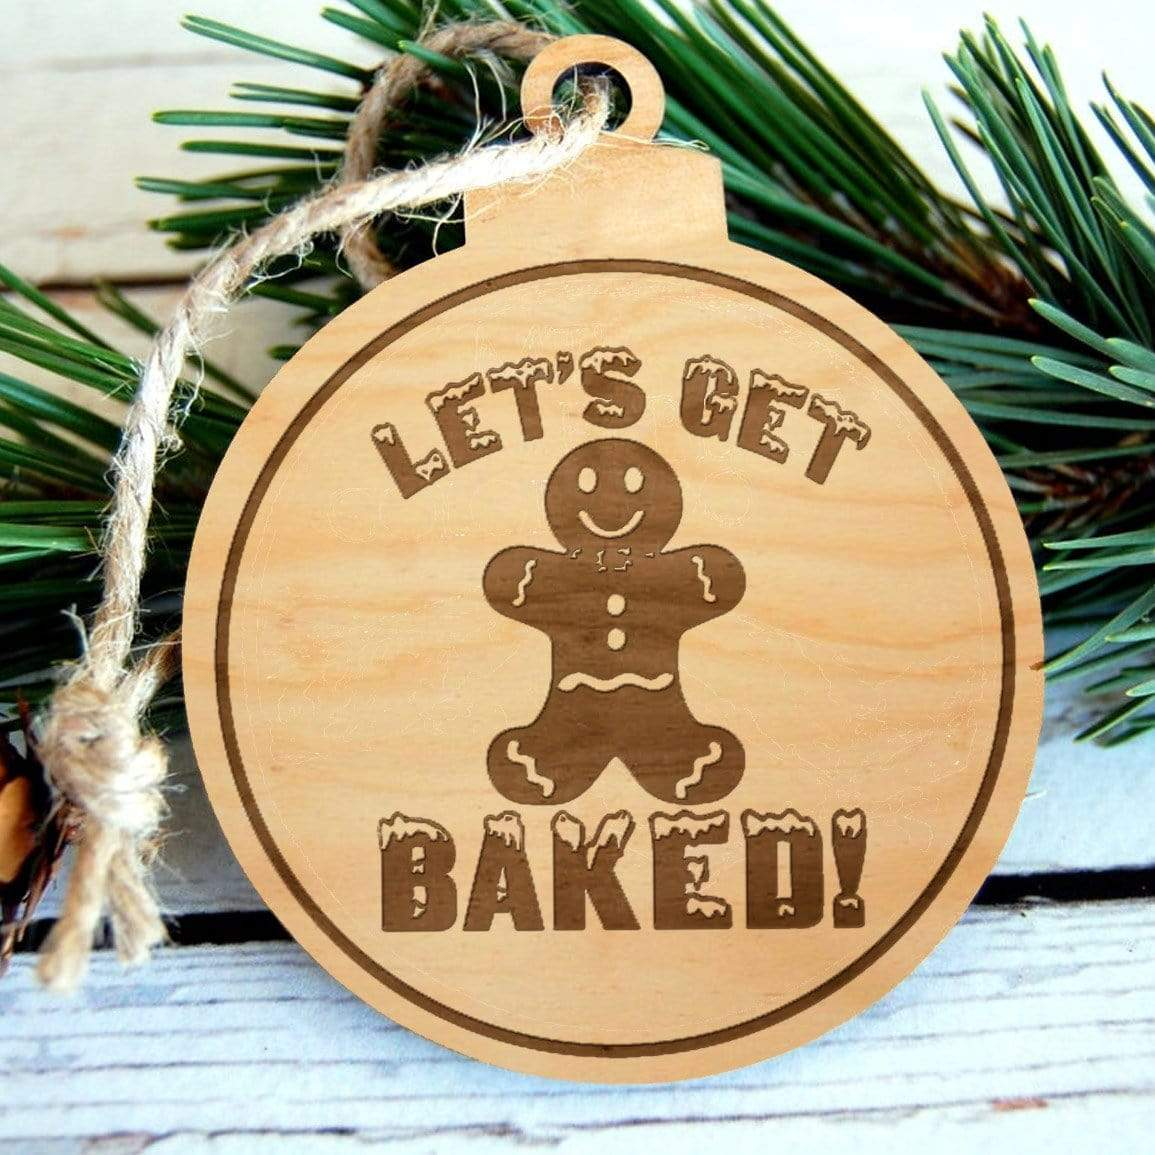 Let's Get Baked Laser Engraved Wooden Christmas Ornament